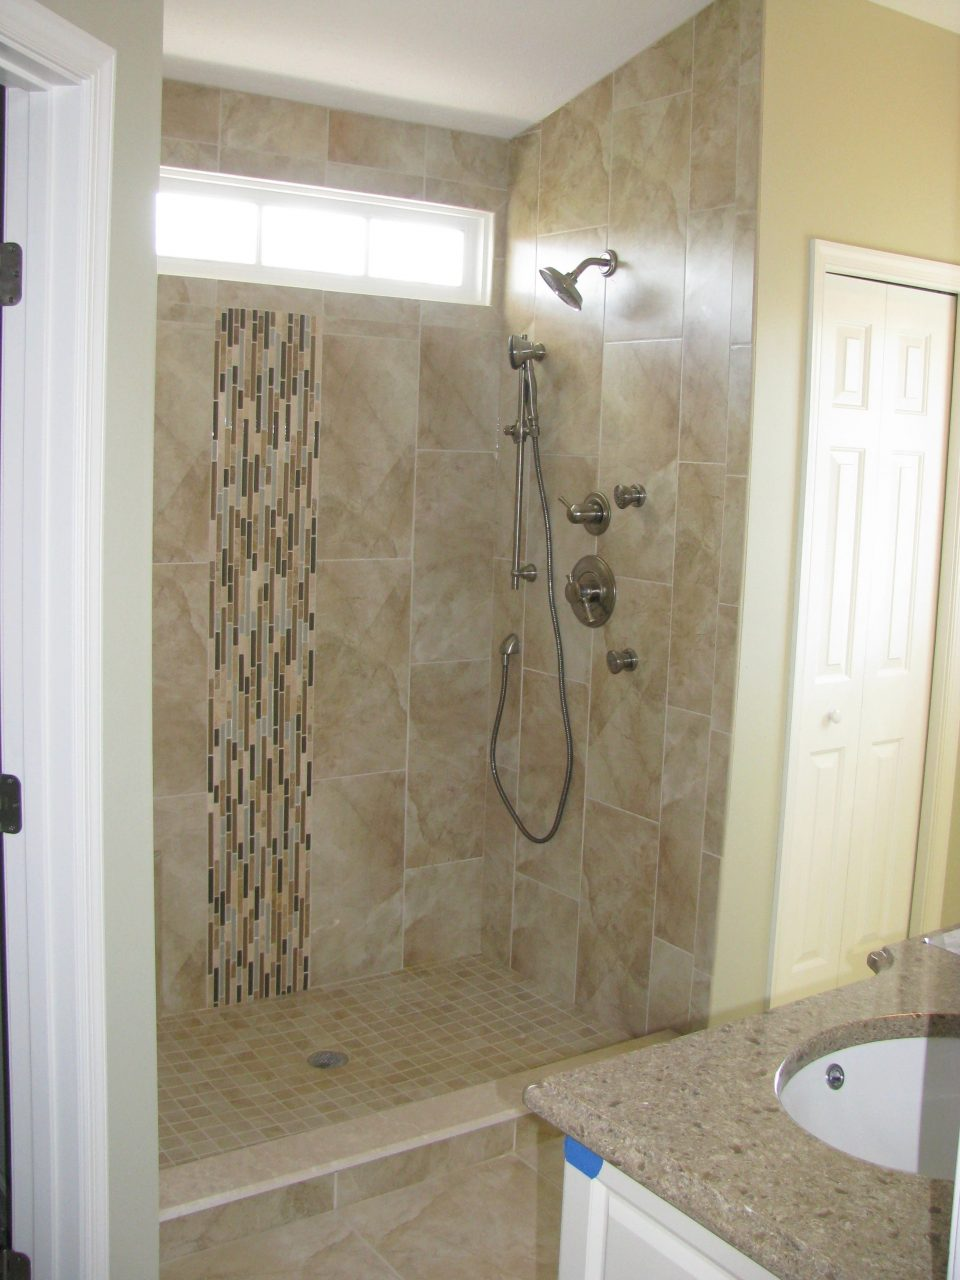 Garage Bathroom Ideas Elegant Garage Design Ideas Gallery Bathroom